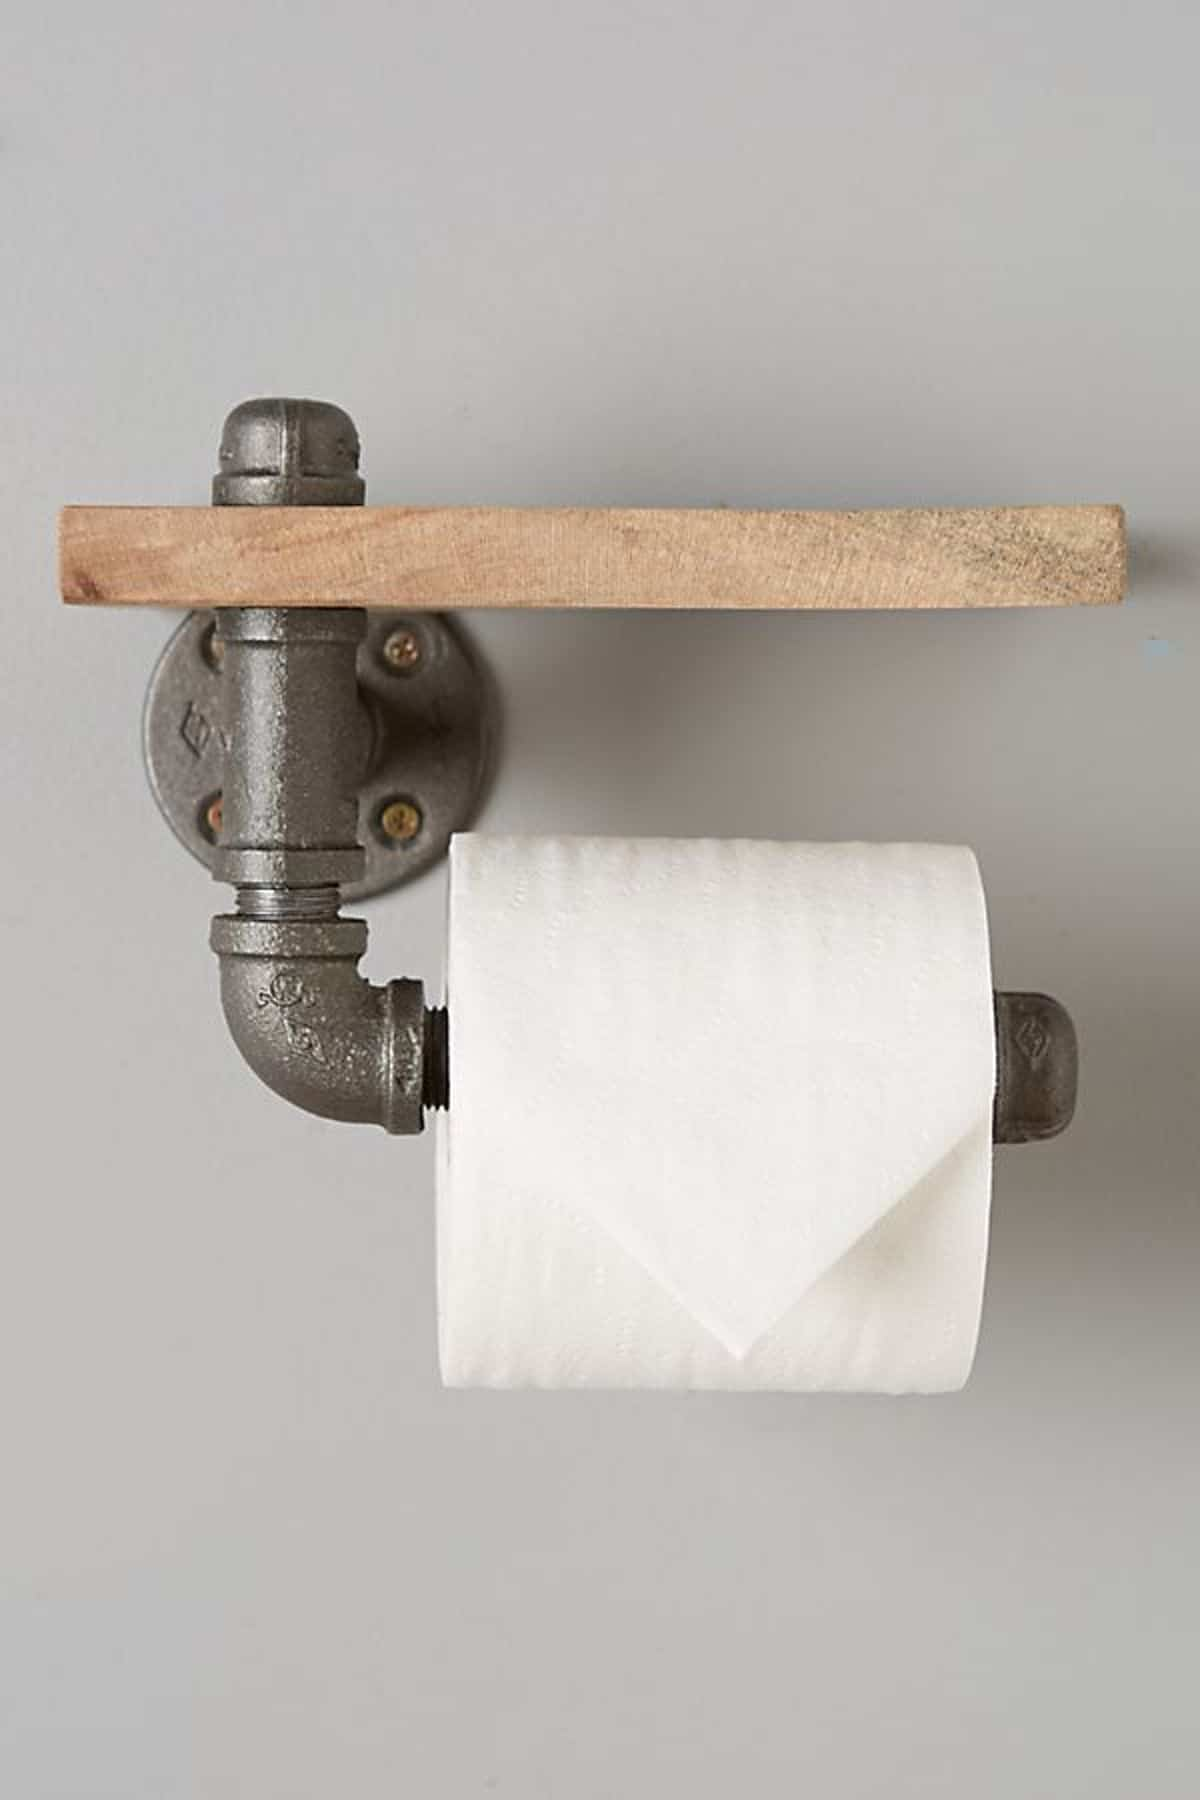 Toilet Paper Holder on Pipe